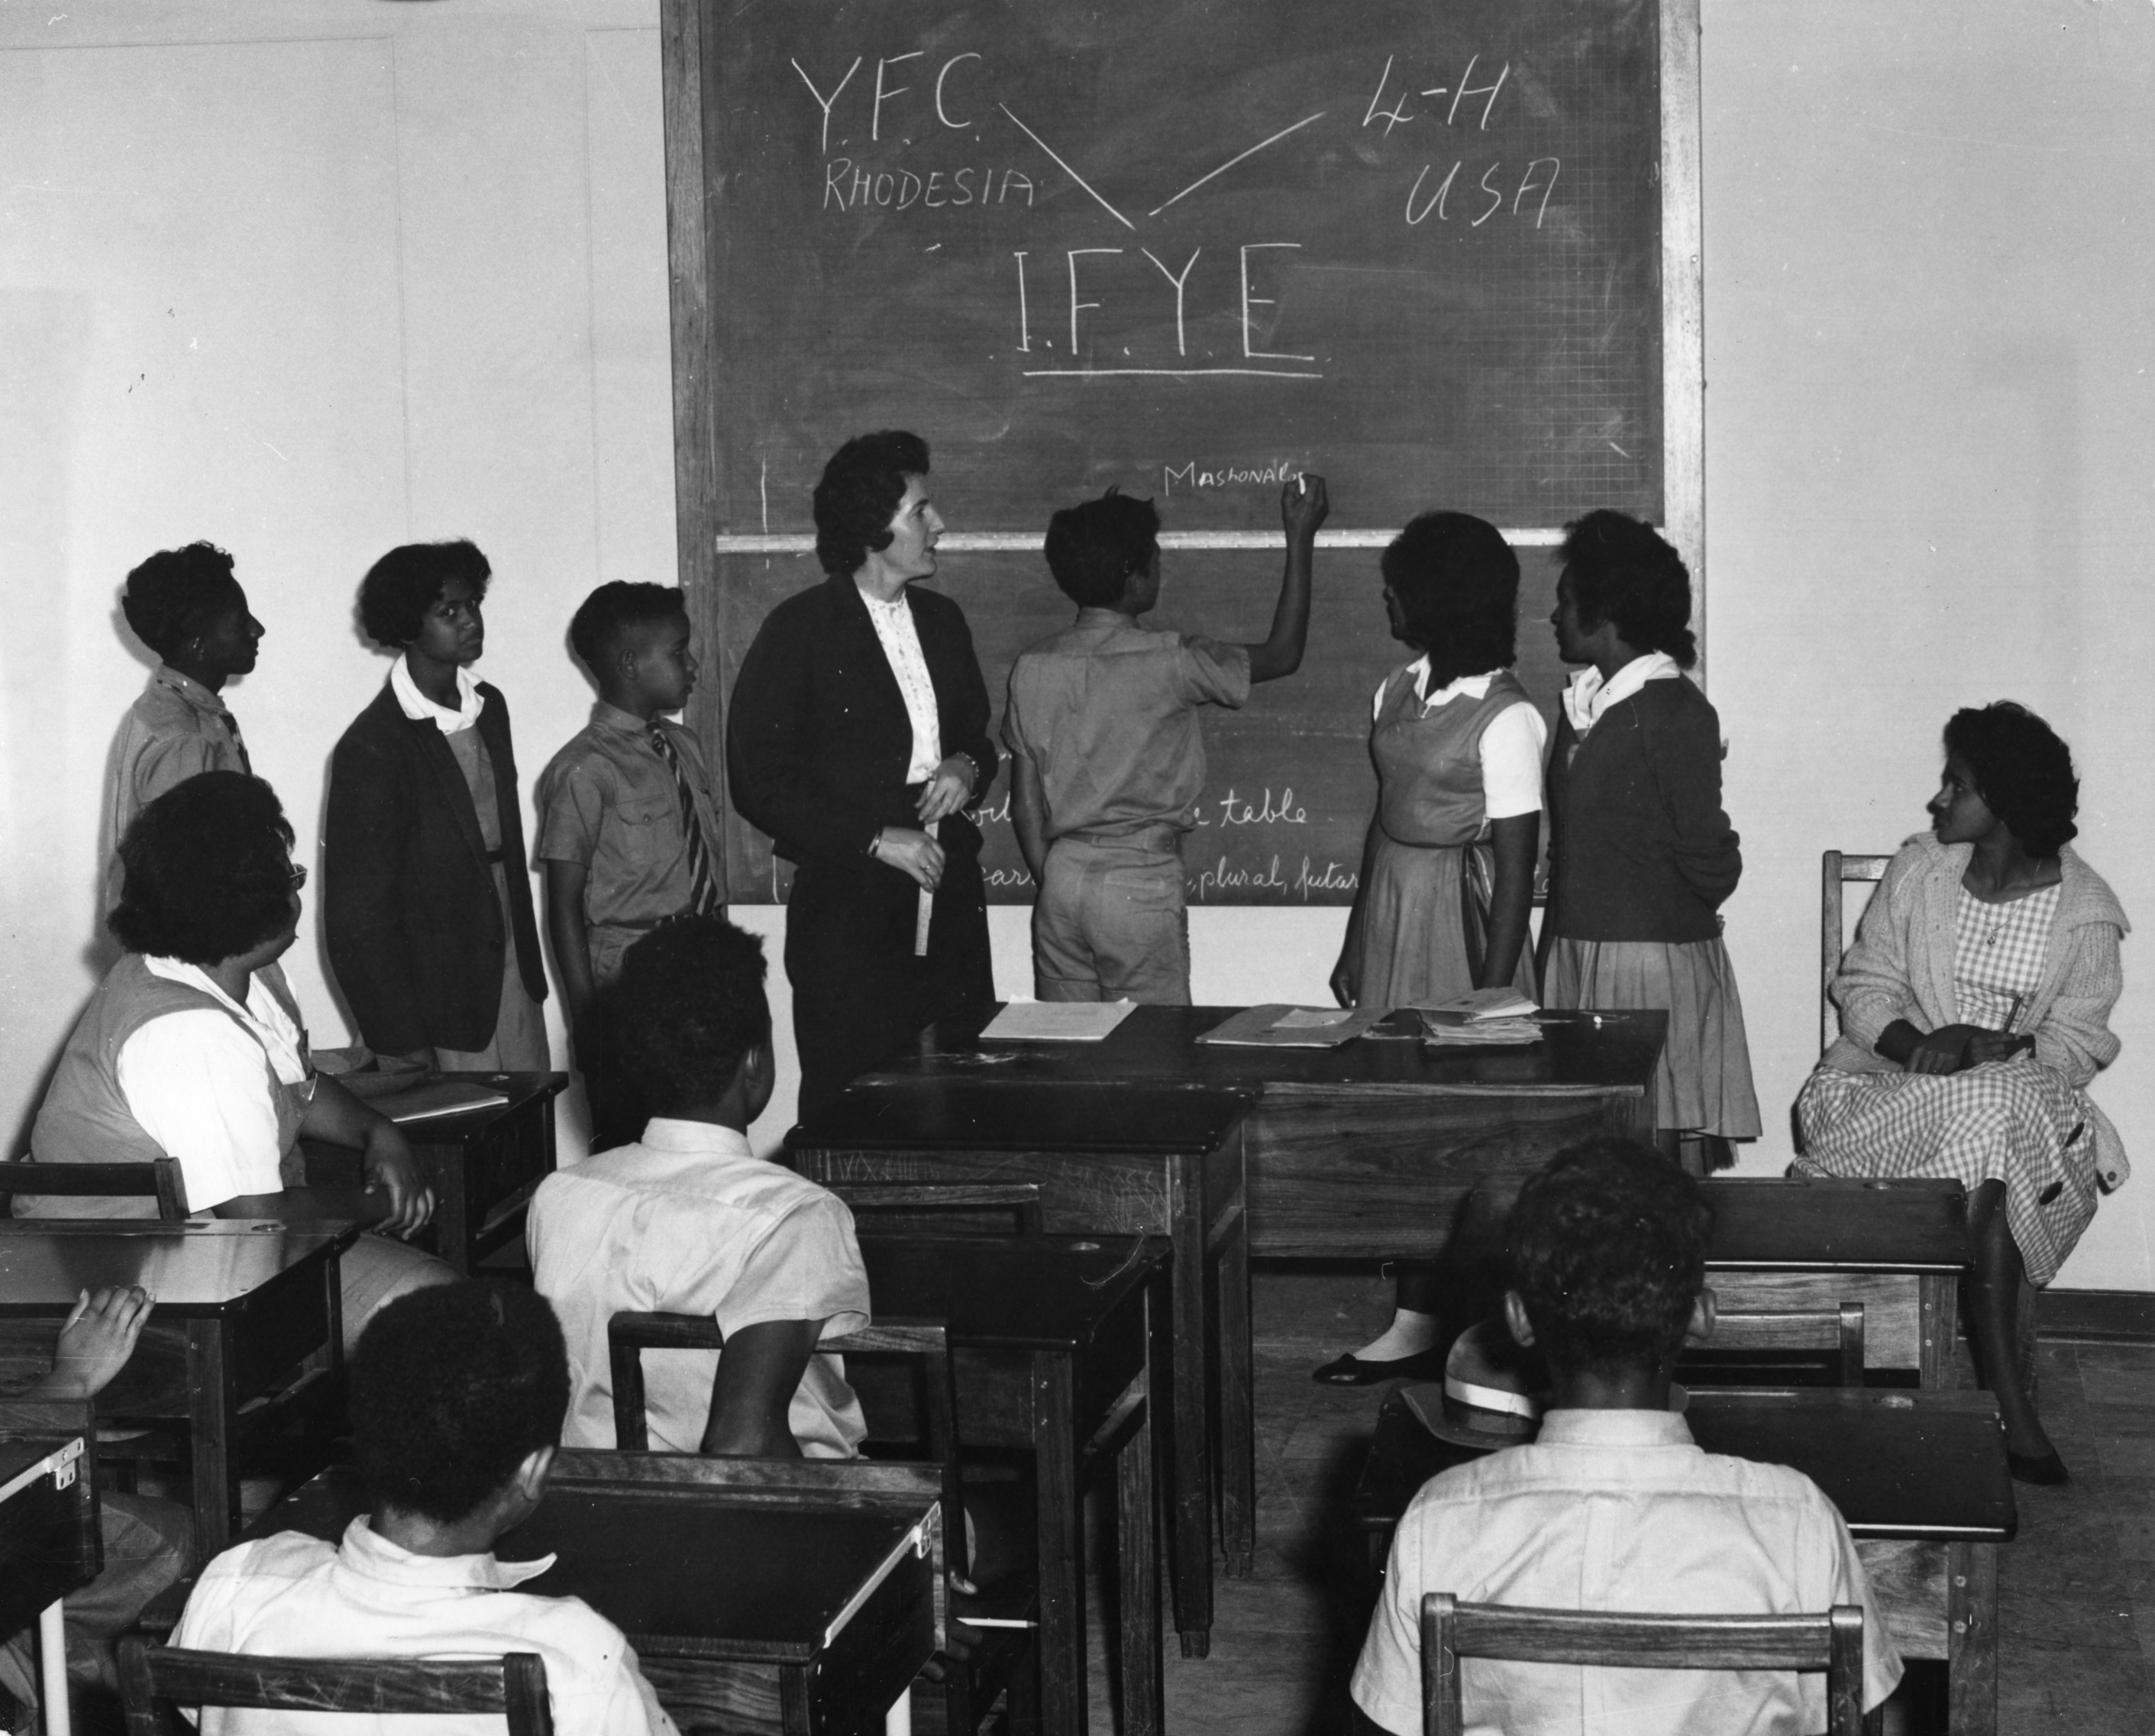 Youth participating in the International Farm Youth Exchange (IFYE) program, writing their names on a blackboard